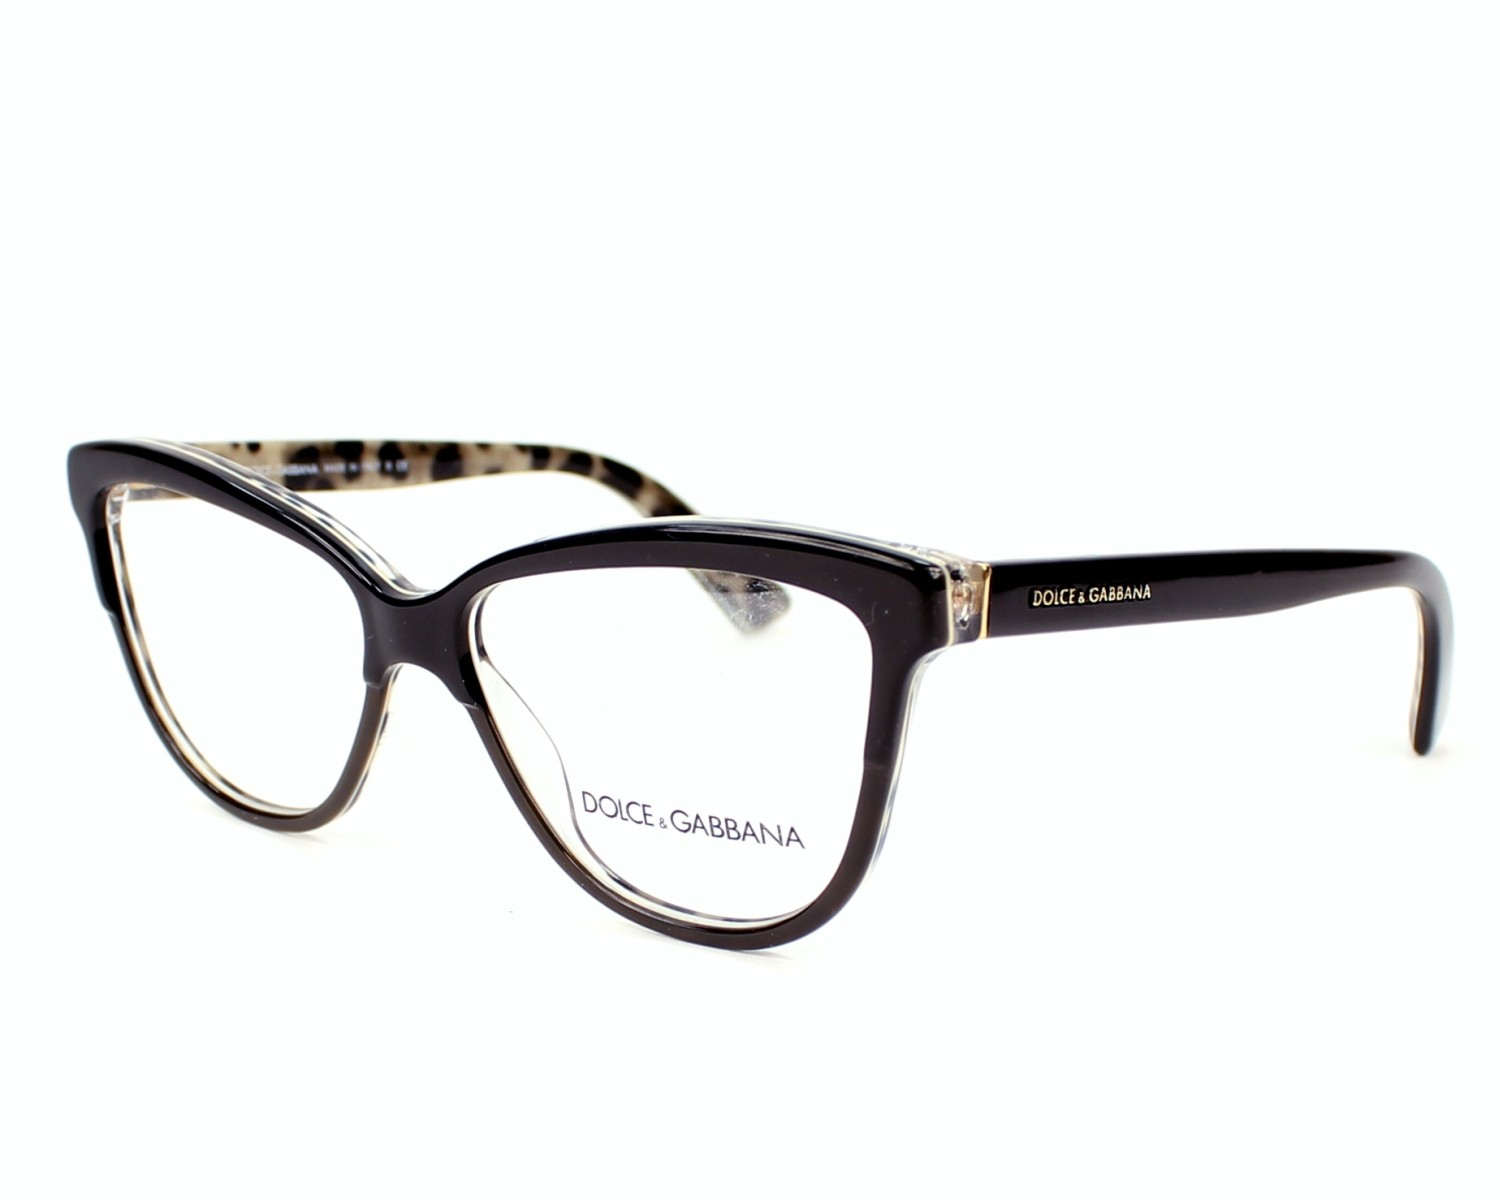 dolce gabbana has been added to your cart